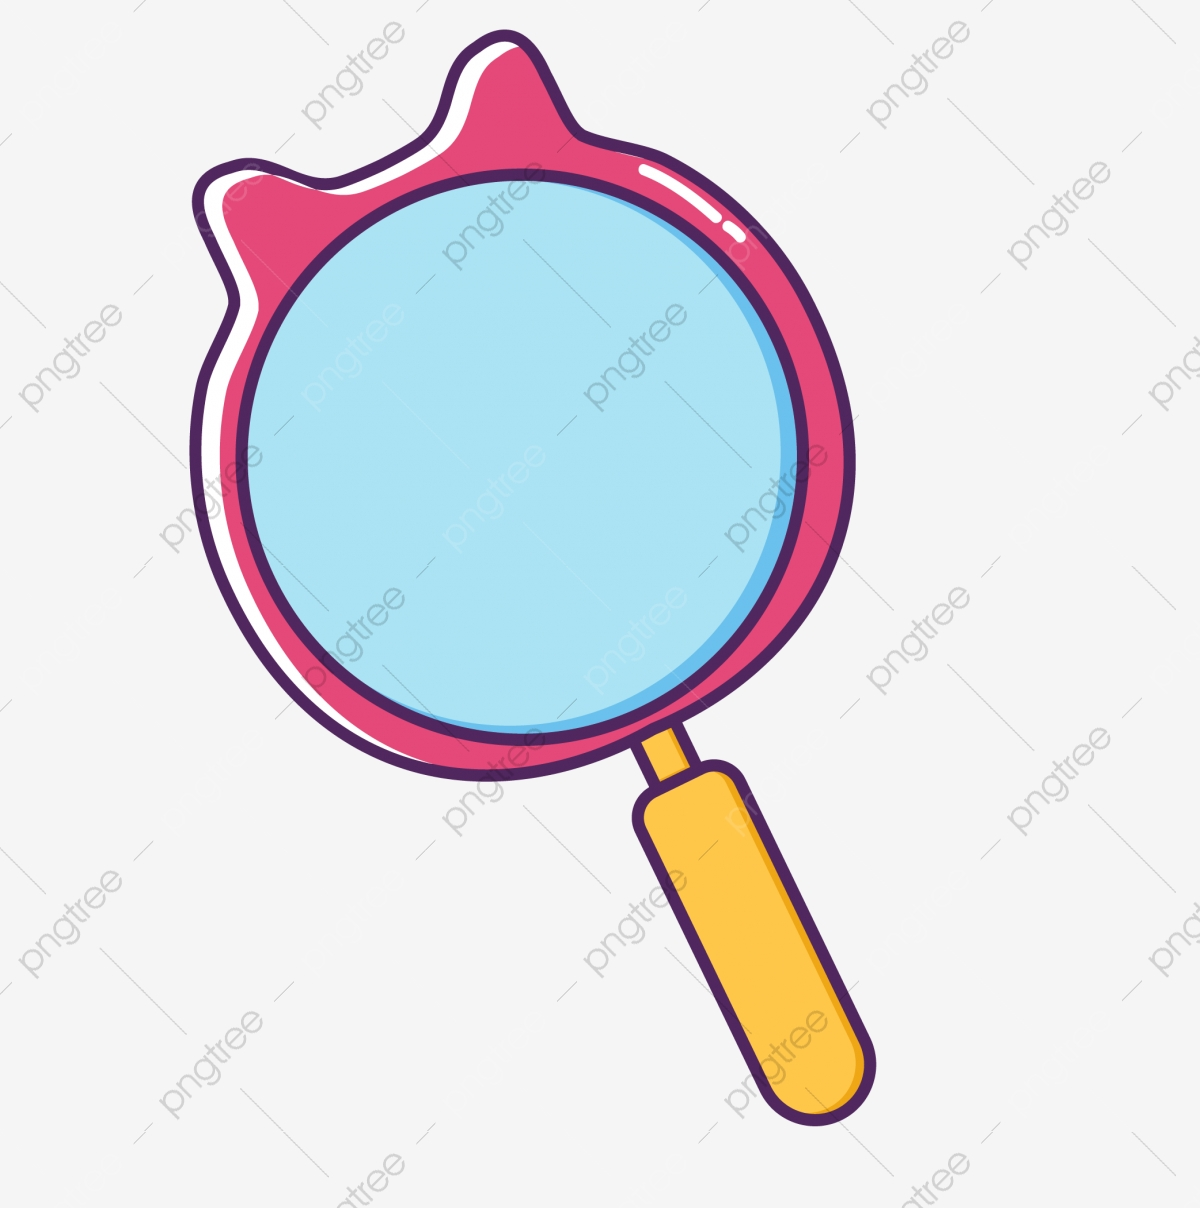 hand drawn cartoon cute pink cat magnifying glass hand drawn magnifying glass learning observation png and vector with transparent background for free download https pngtree com freepng hand drawn cartoon cute pink cat magnifying glass 4478810 html